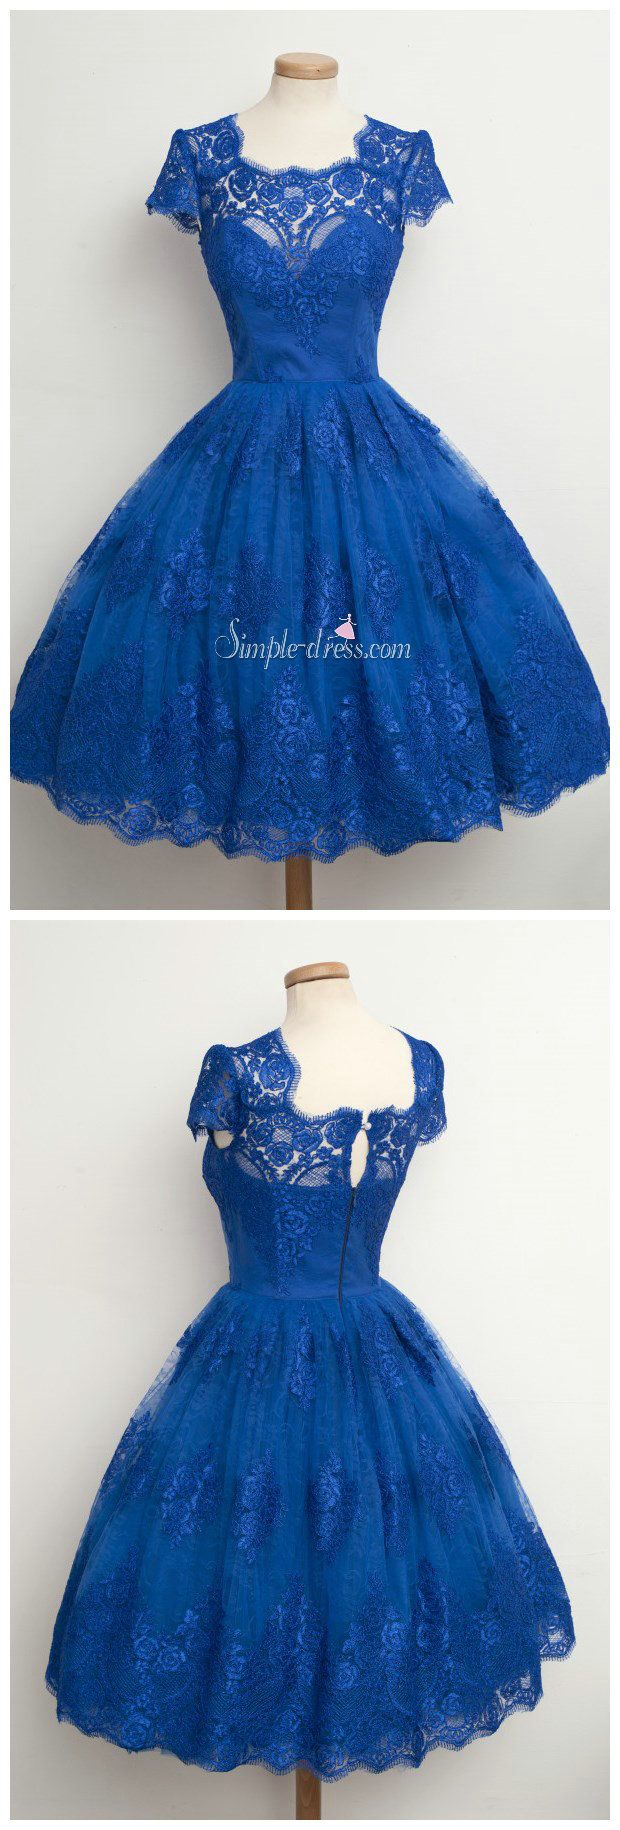 Vintage s dress prom dress homecoming dress royal blue short